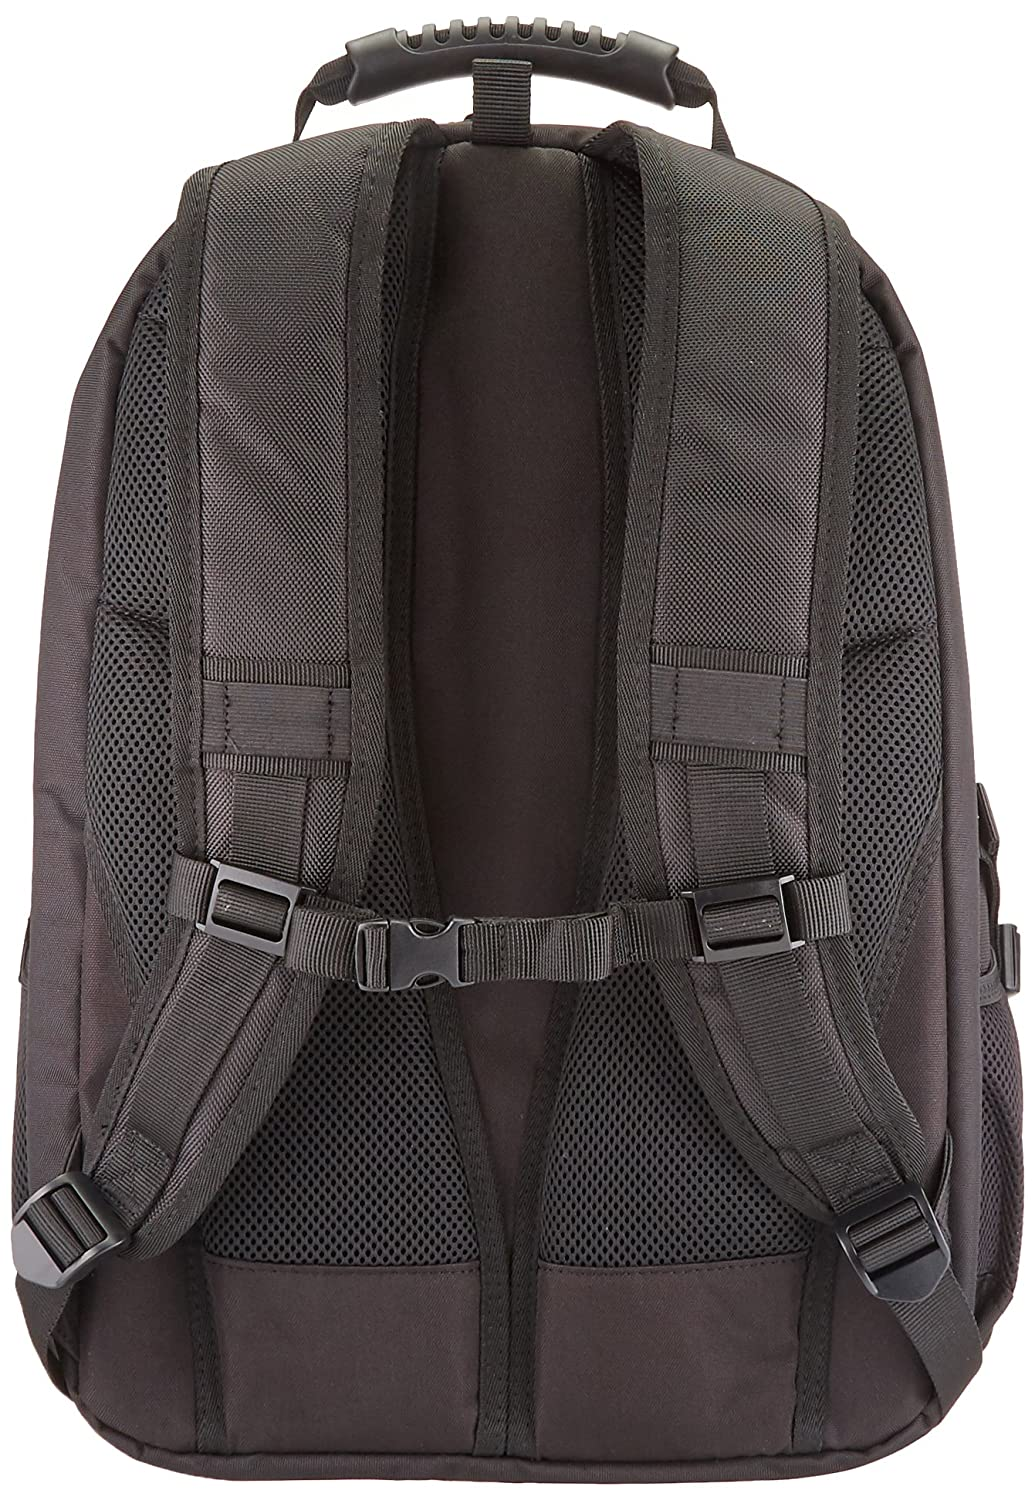 6ee055ffcdbf AmazonBasics Adventure Laptop Backpack - Fits Up to 17-Inch Laptops